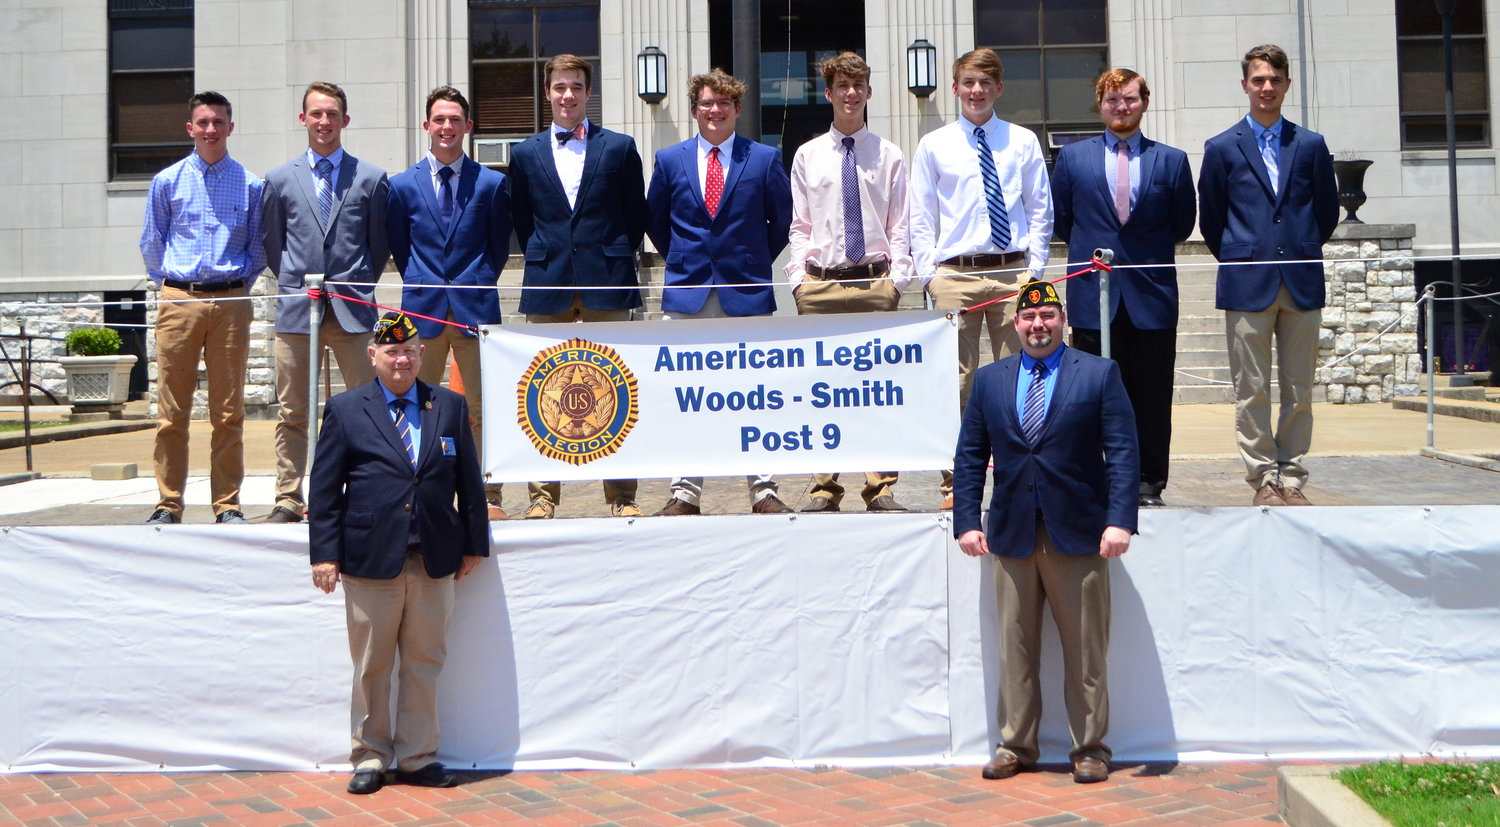 Pictured are this year's Boys State delegates from Walker County. Pictured top row, from left to right, Coulson Aaron, Gavin Wideman and Ethan Wideman of Curry High School; Christopher Wilson, Jack Bryan, Colin Daughdrill and John Crump of Jasper High School; Tristin Lollar of Oakman High School; and Nicholas Persky of Sumiton Christian School. Pictured, bottom row, is James Snow, chairman of American Legion Woods-Smith Post 9, and Ernest Inman, Post 9 commander. Not pictured is Cameron Frost of Cordova High School, Nicholas Keeton and Colton Hall of Jasper High School, and Micah Harrison of Dora High School.